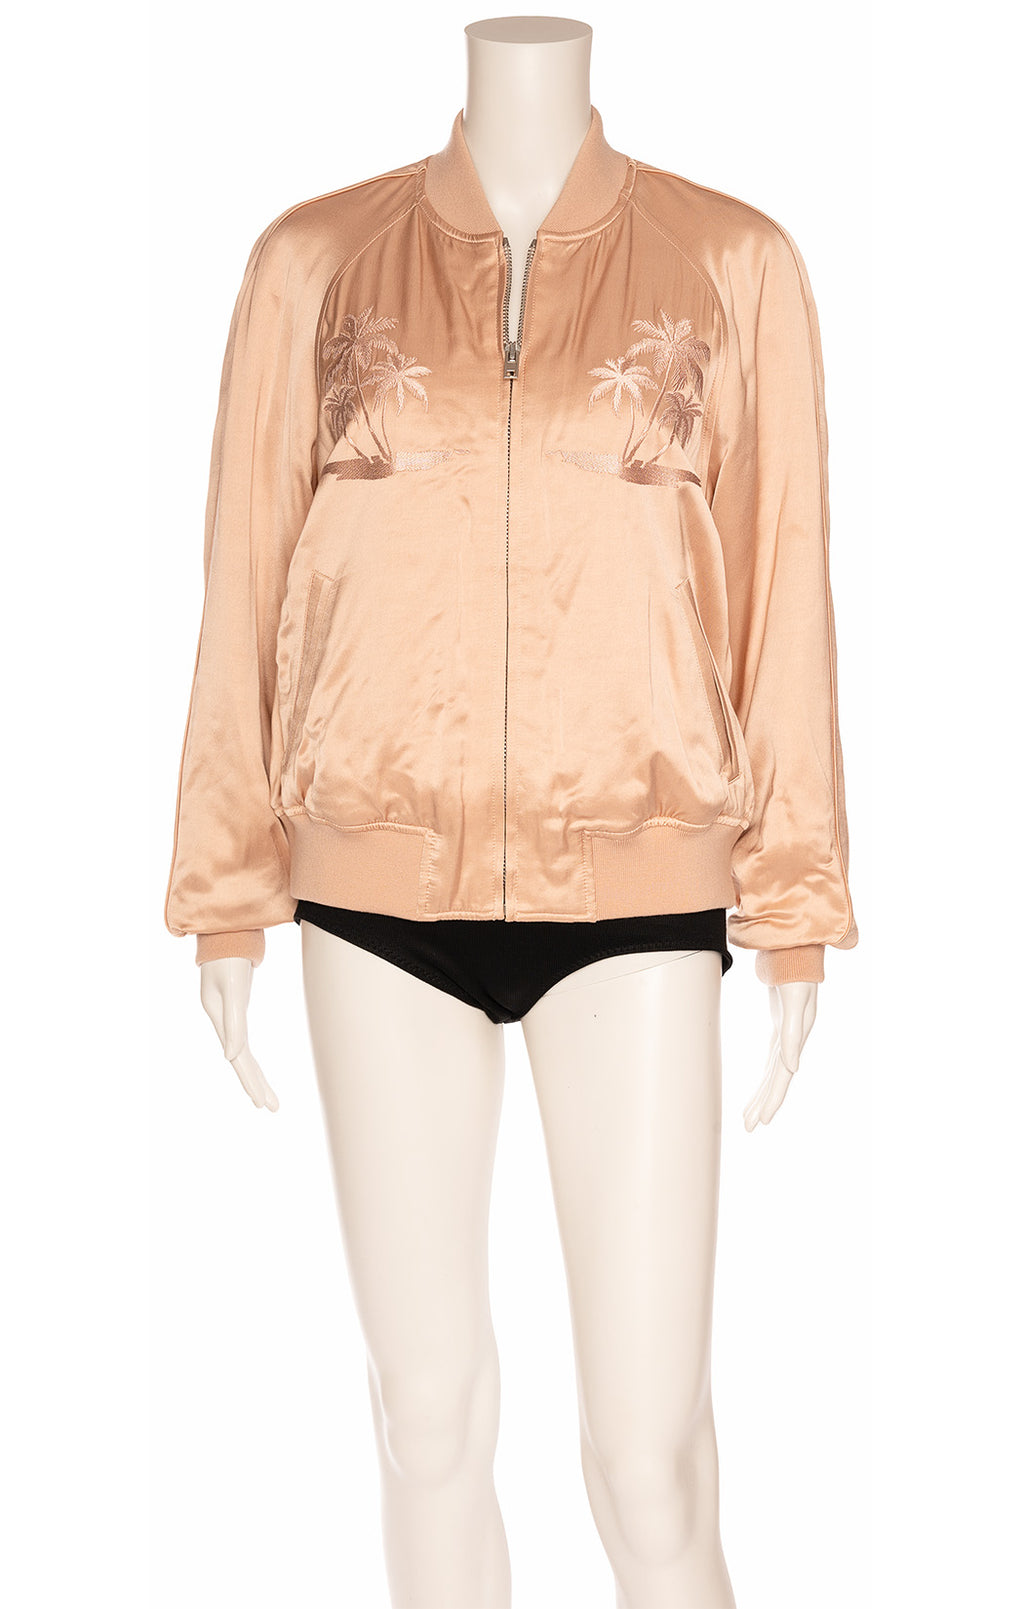 Peach colored bomber style jacket with embroidery front and back, zipper front closure and side front slit pockets